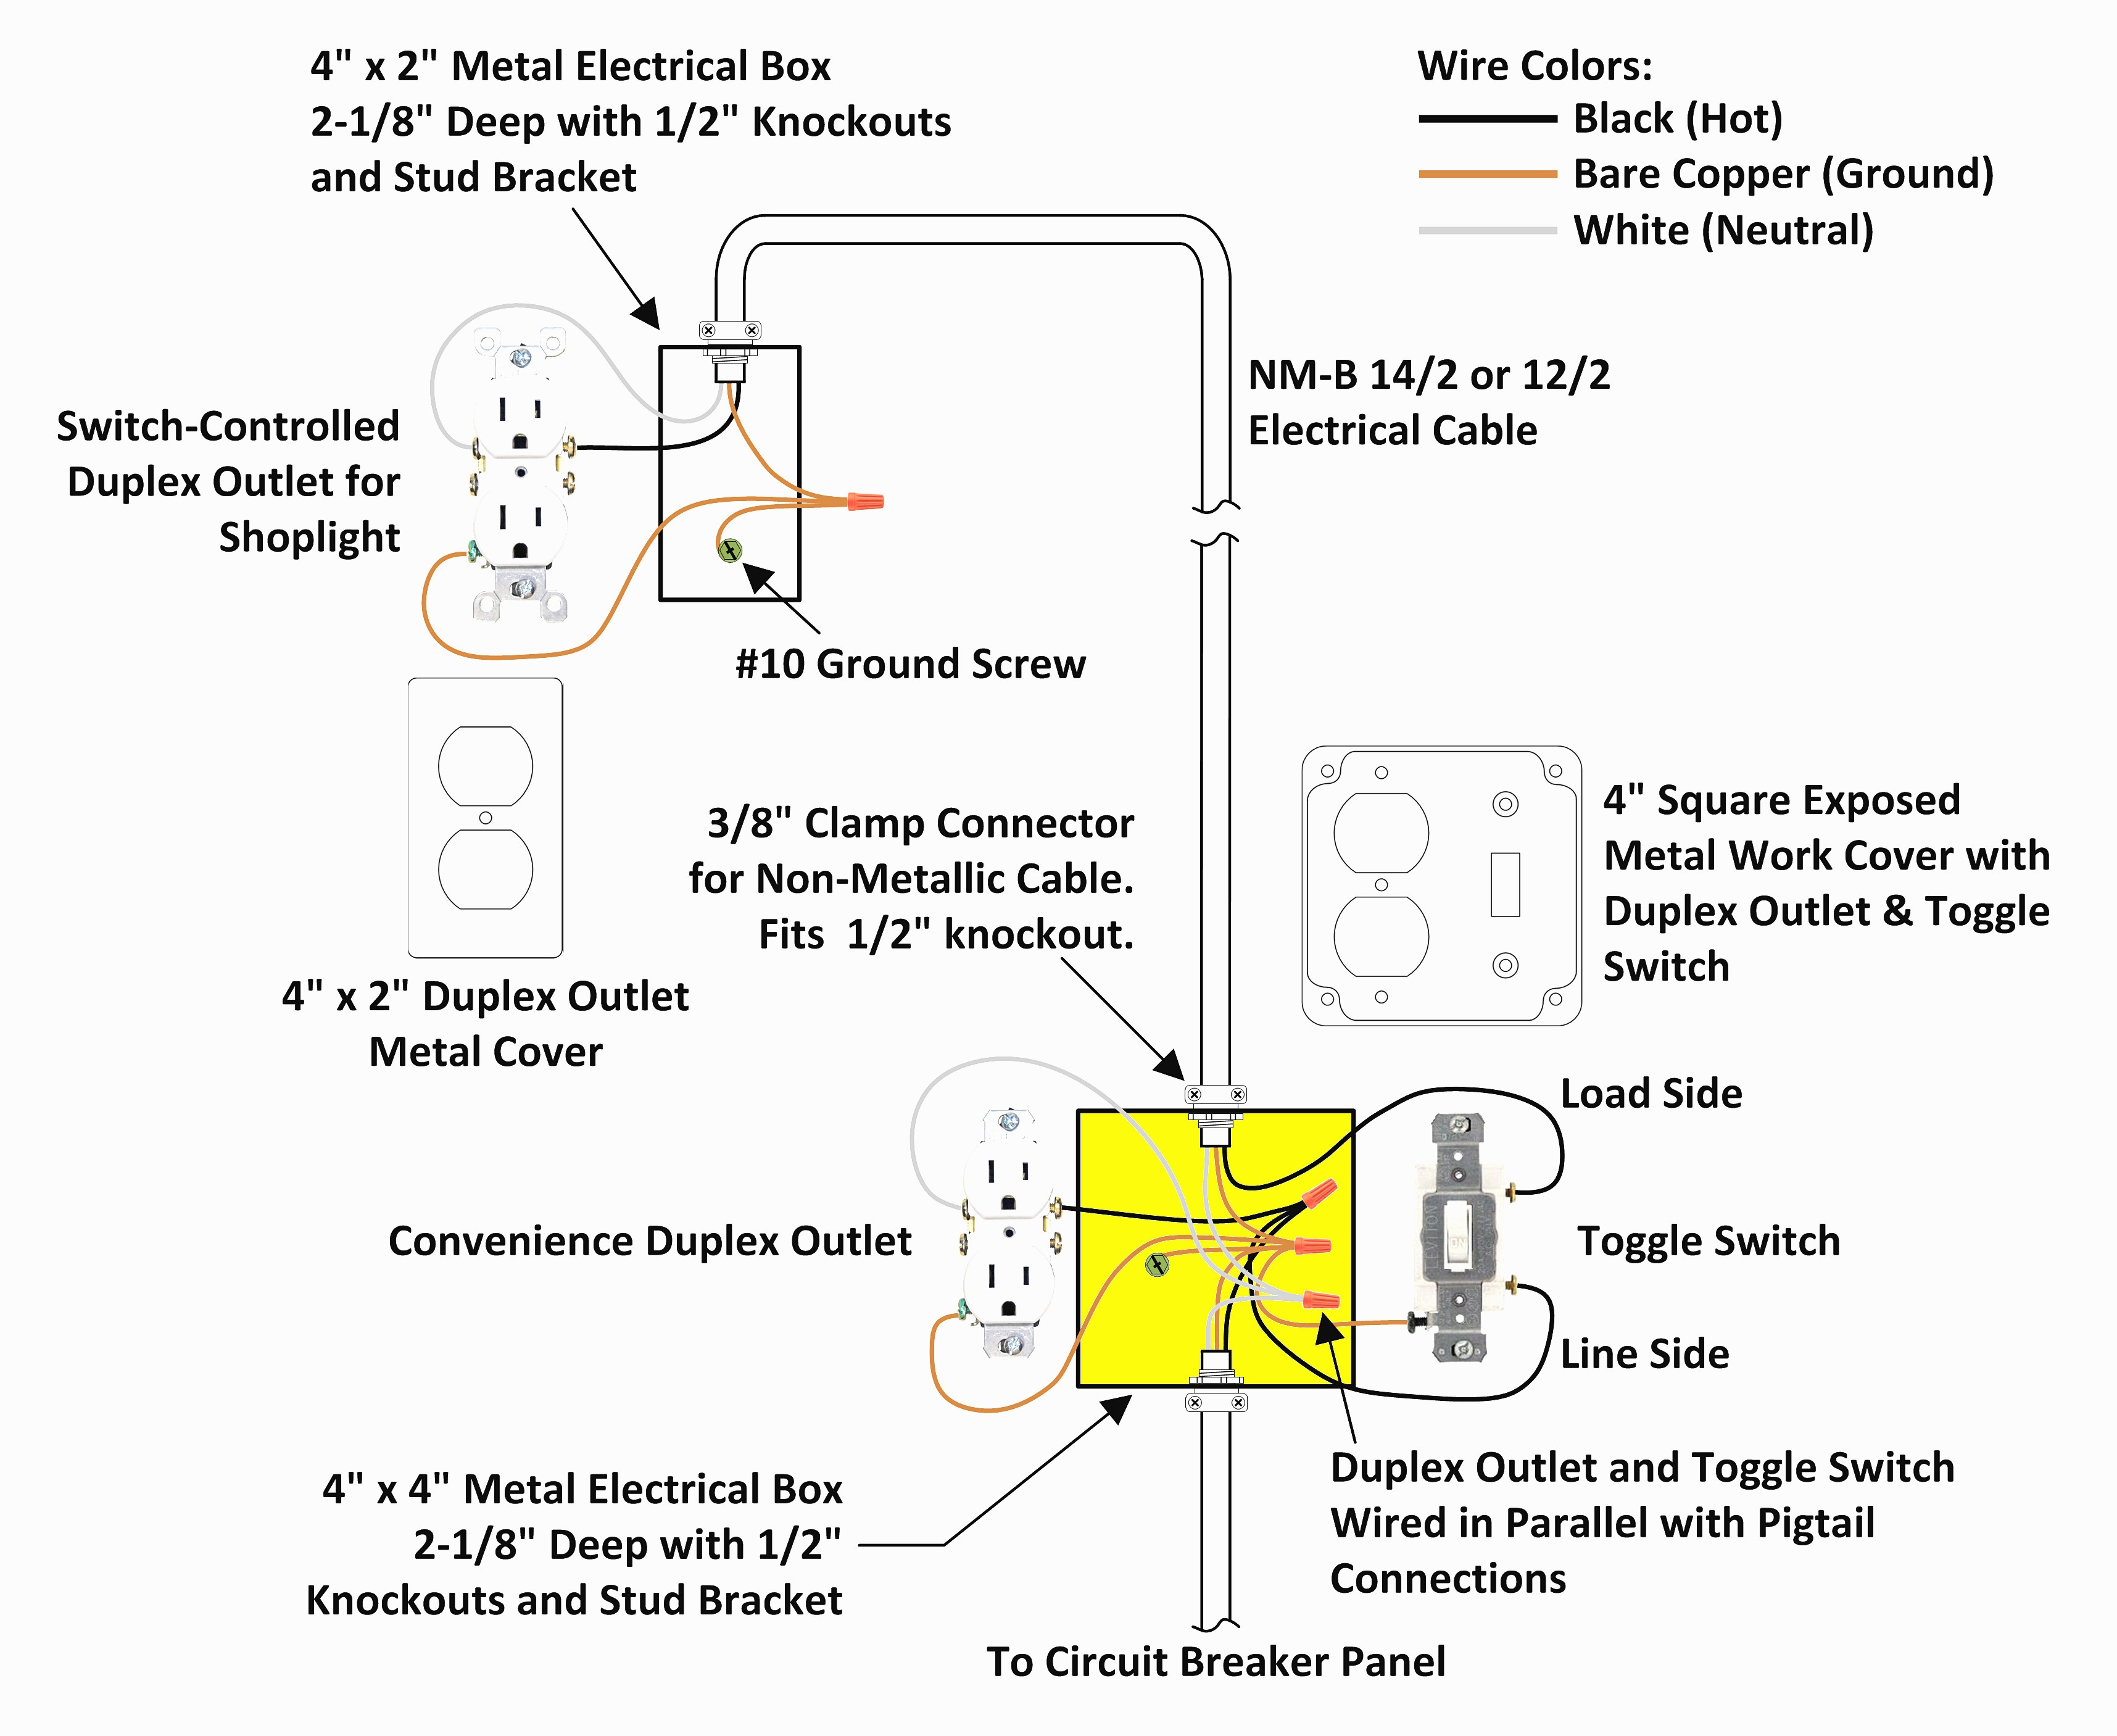 Wiring Diagram For Dimmer Switch Single Pole Free Download | Wiring - 3 Way Switch Single Pole Wiring Diagram